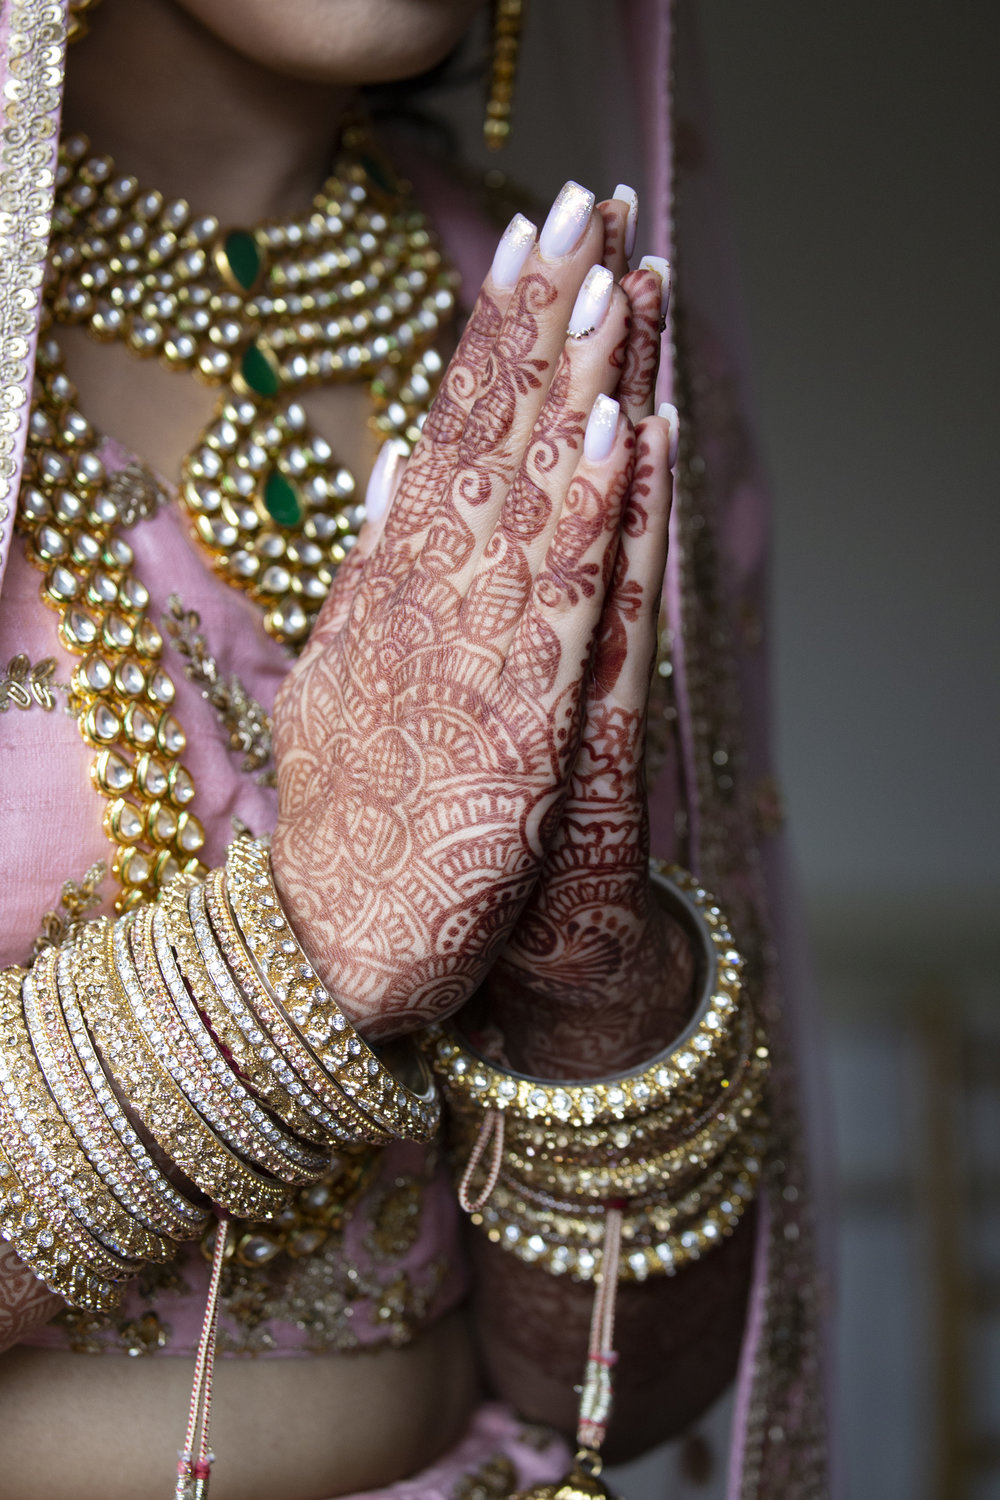 INDIAN WEDDING BRIDE HAND HENNA.JPG